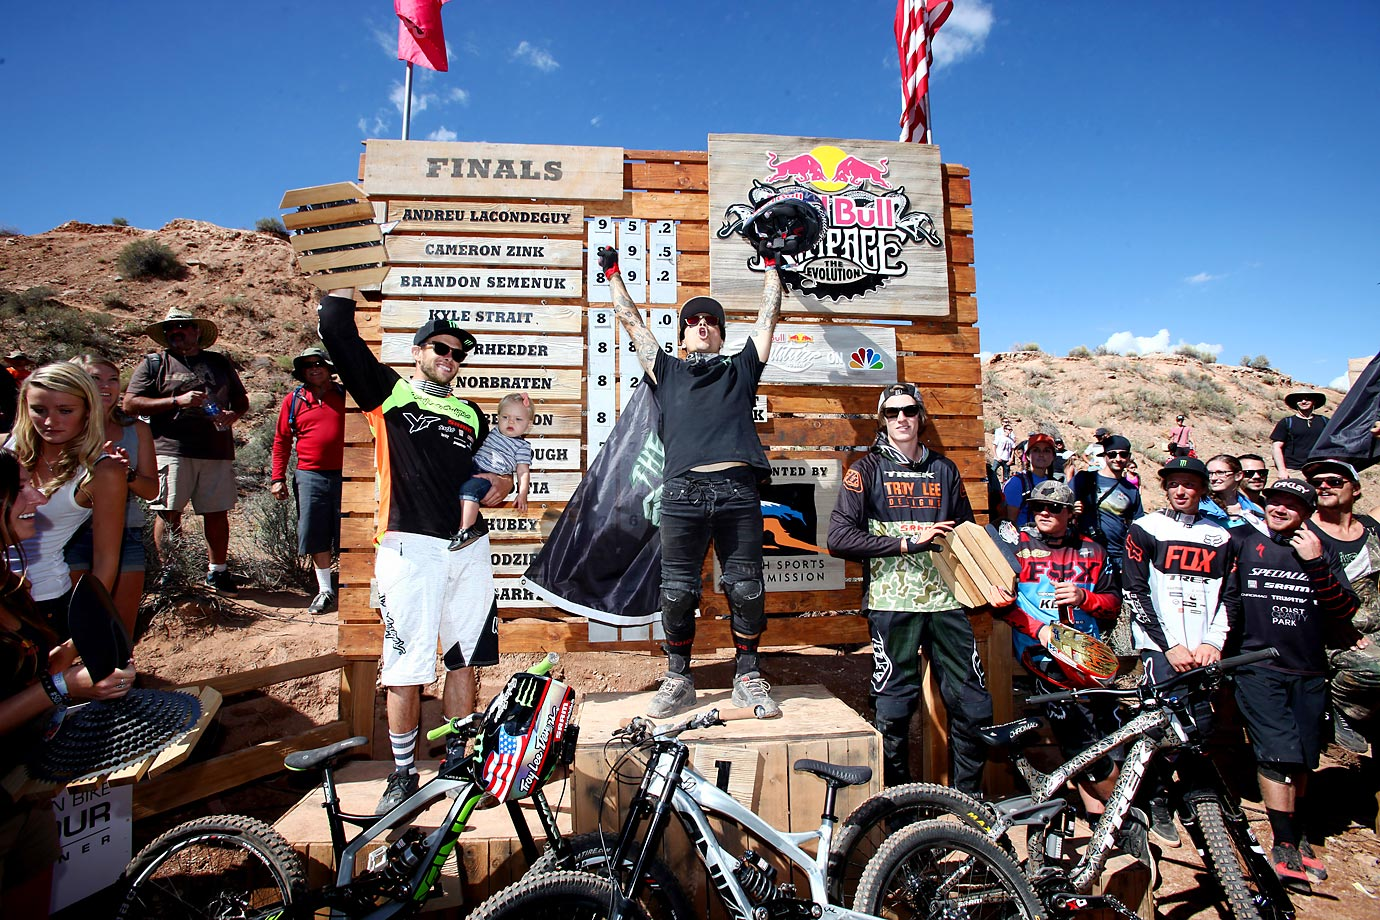 Cameron Zink, Andreu Lacondeguy, and Brandon Semenuk celebrate on the podium after the Red Bull Rampage.